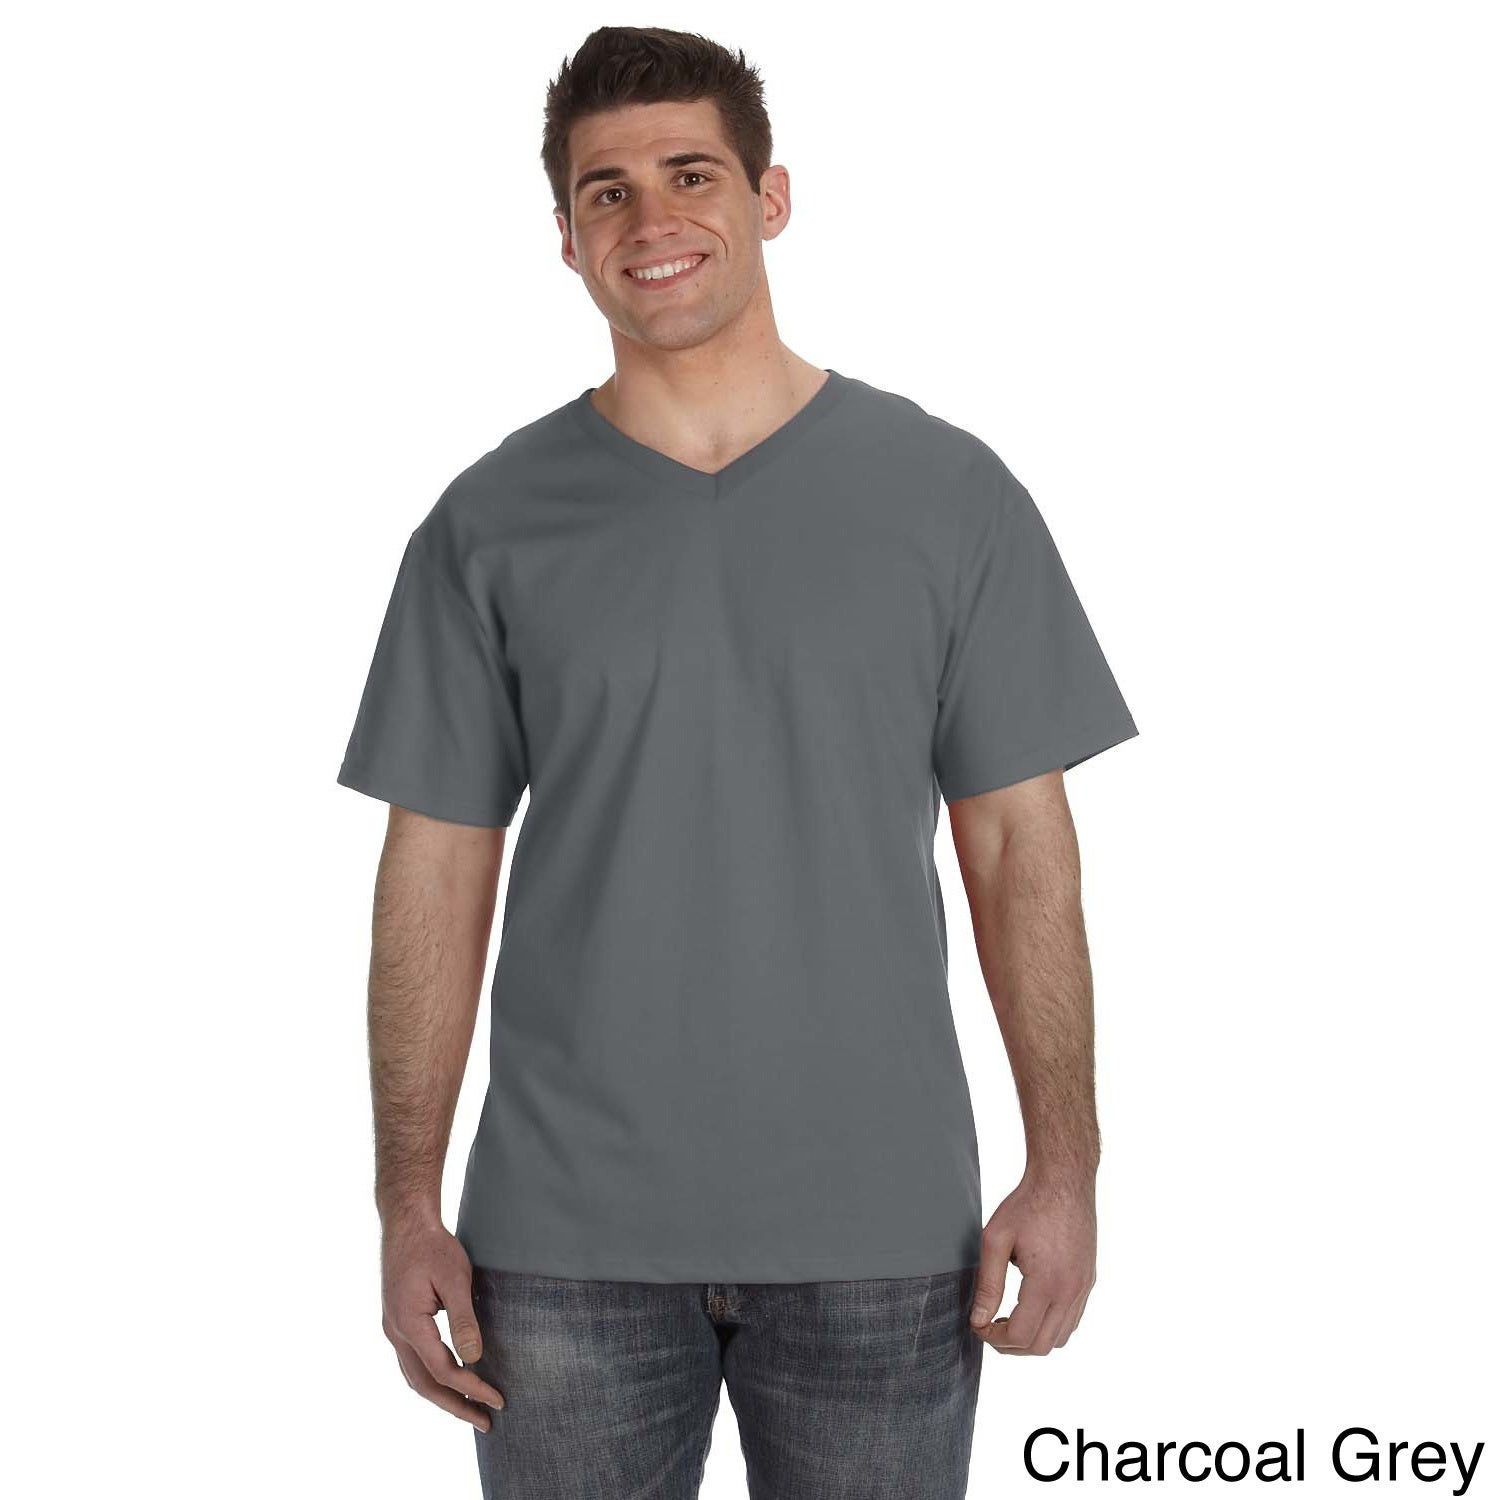 Fruit of the Loom Men's Heavyweight Cotton V-neck T-shirt...